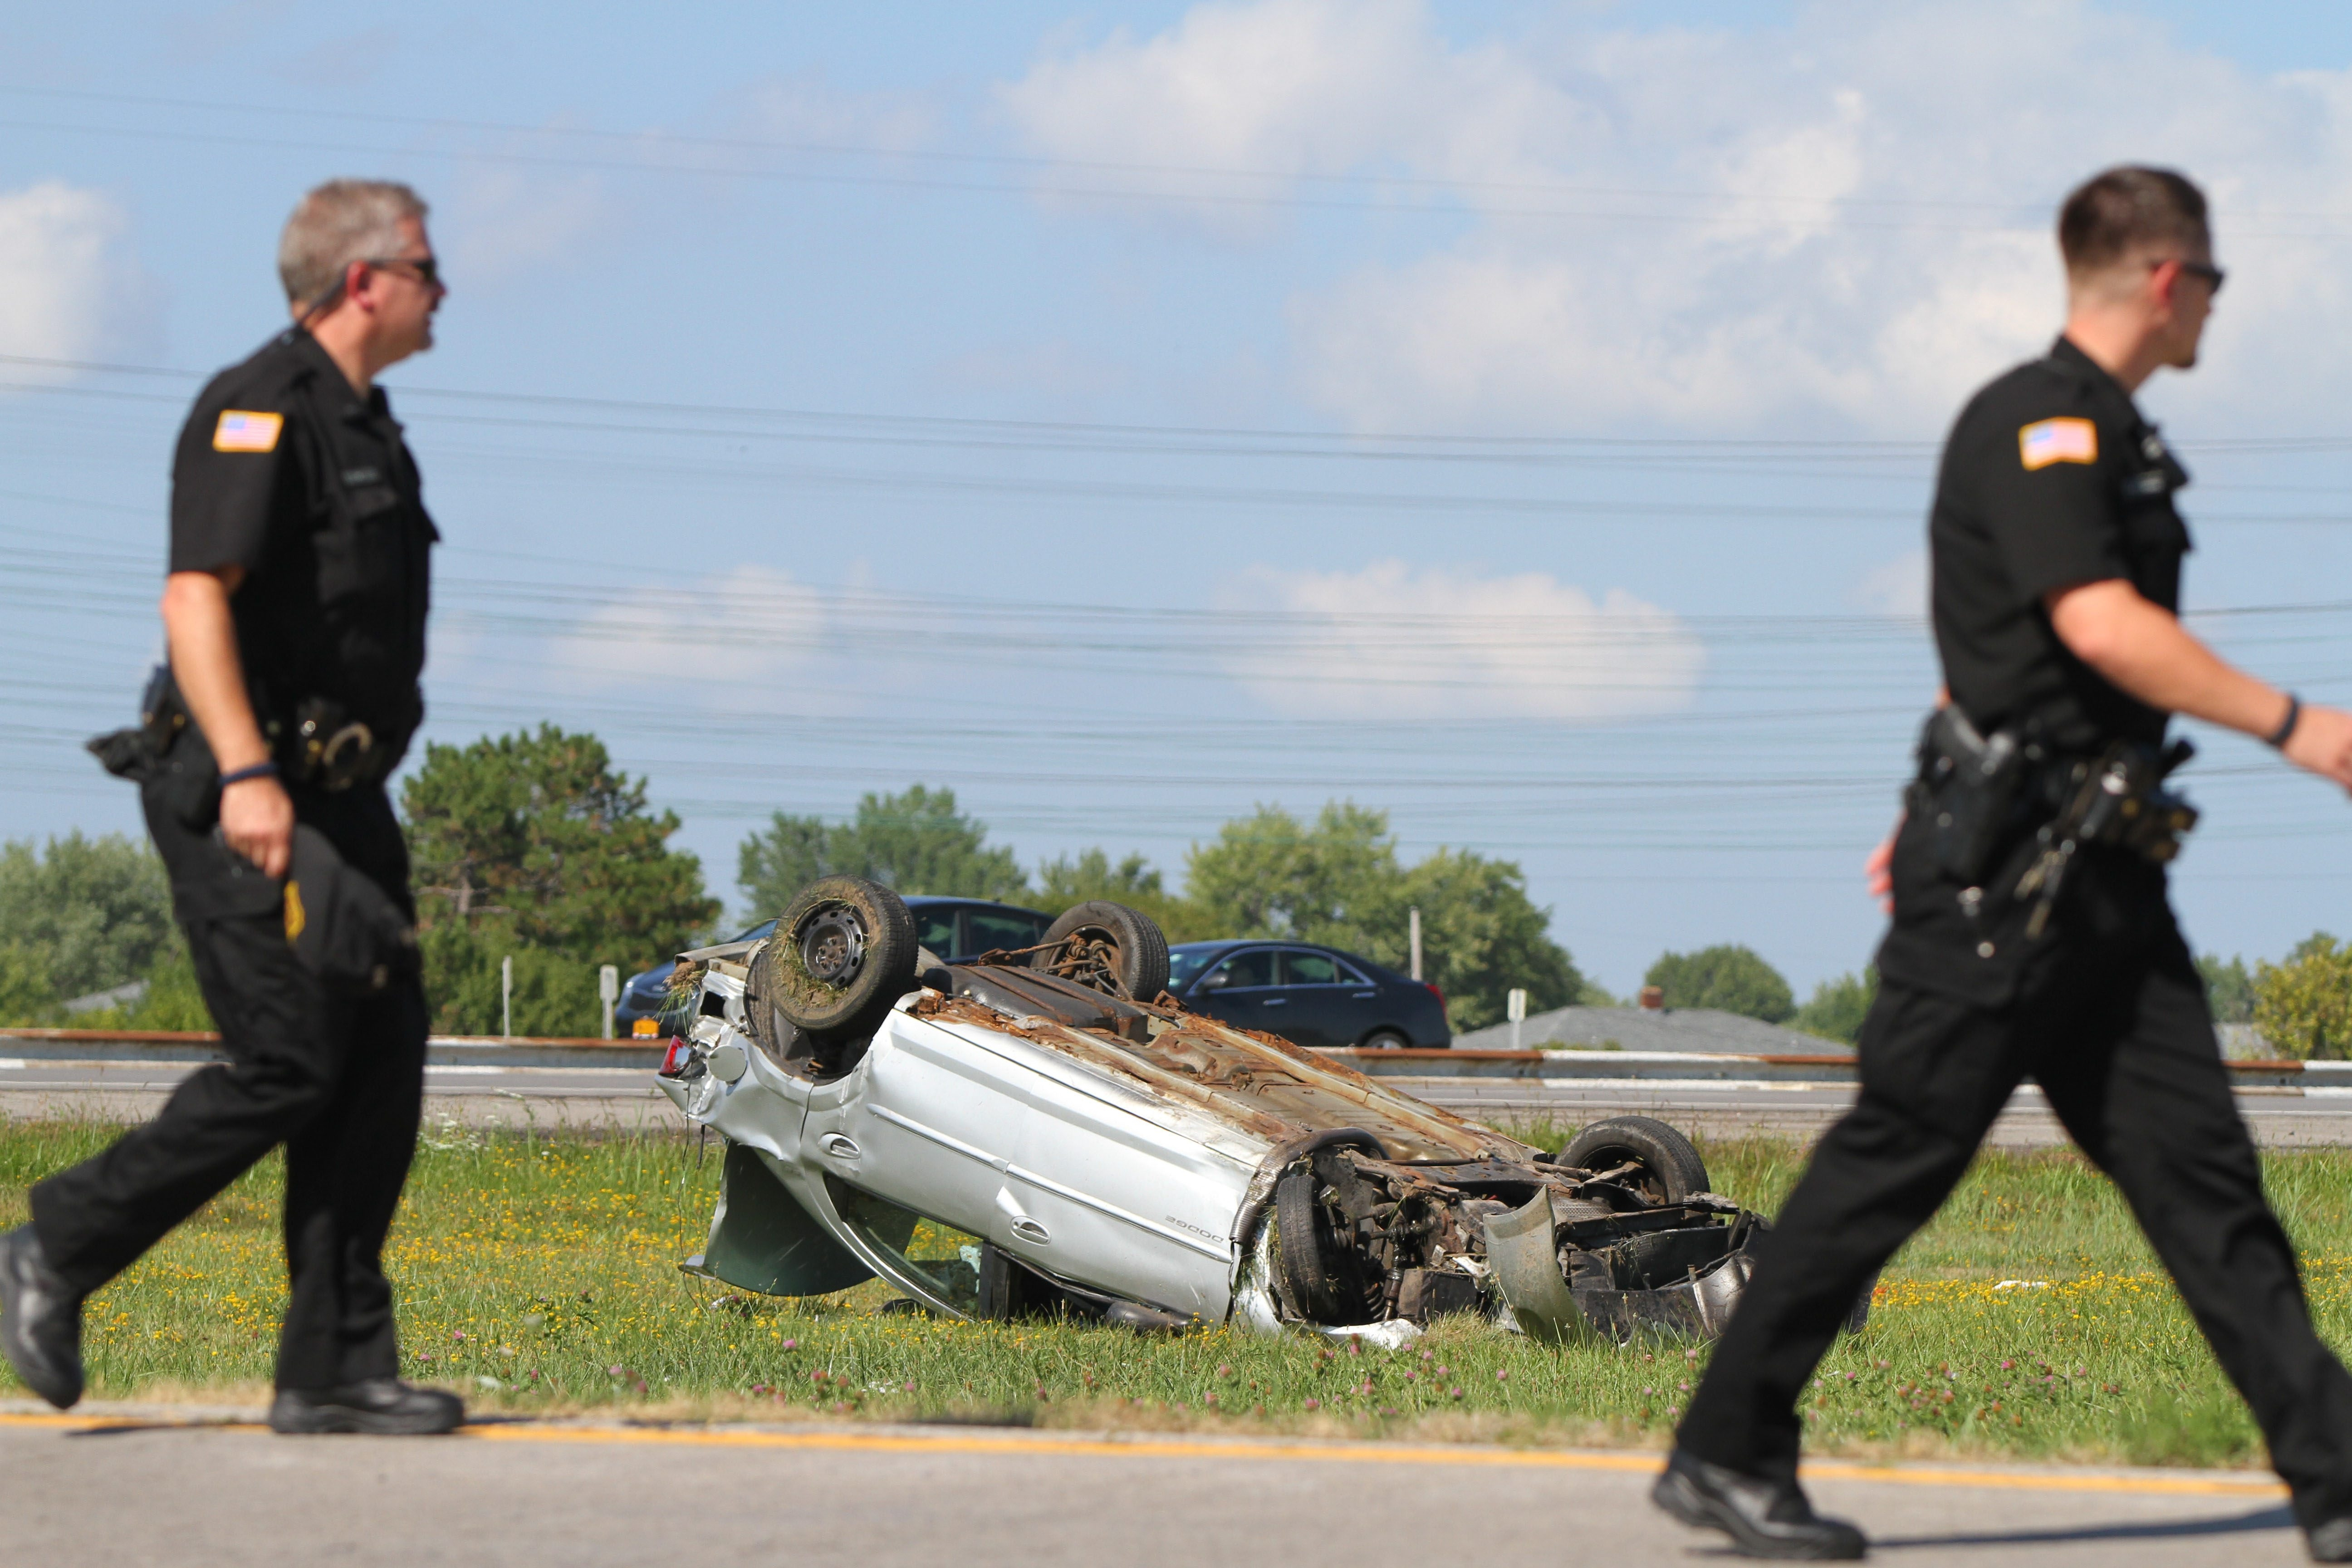 Police officers work on a fatal crash on the I-290 at the Elmwood Ave exit in Tonawanda Tuesday, August 19, 2014.   (Mark Mulville/Buffalo News)